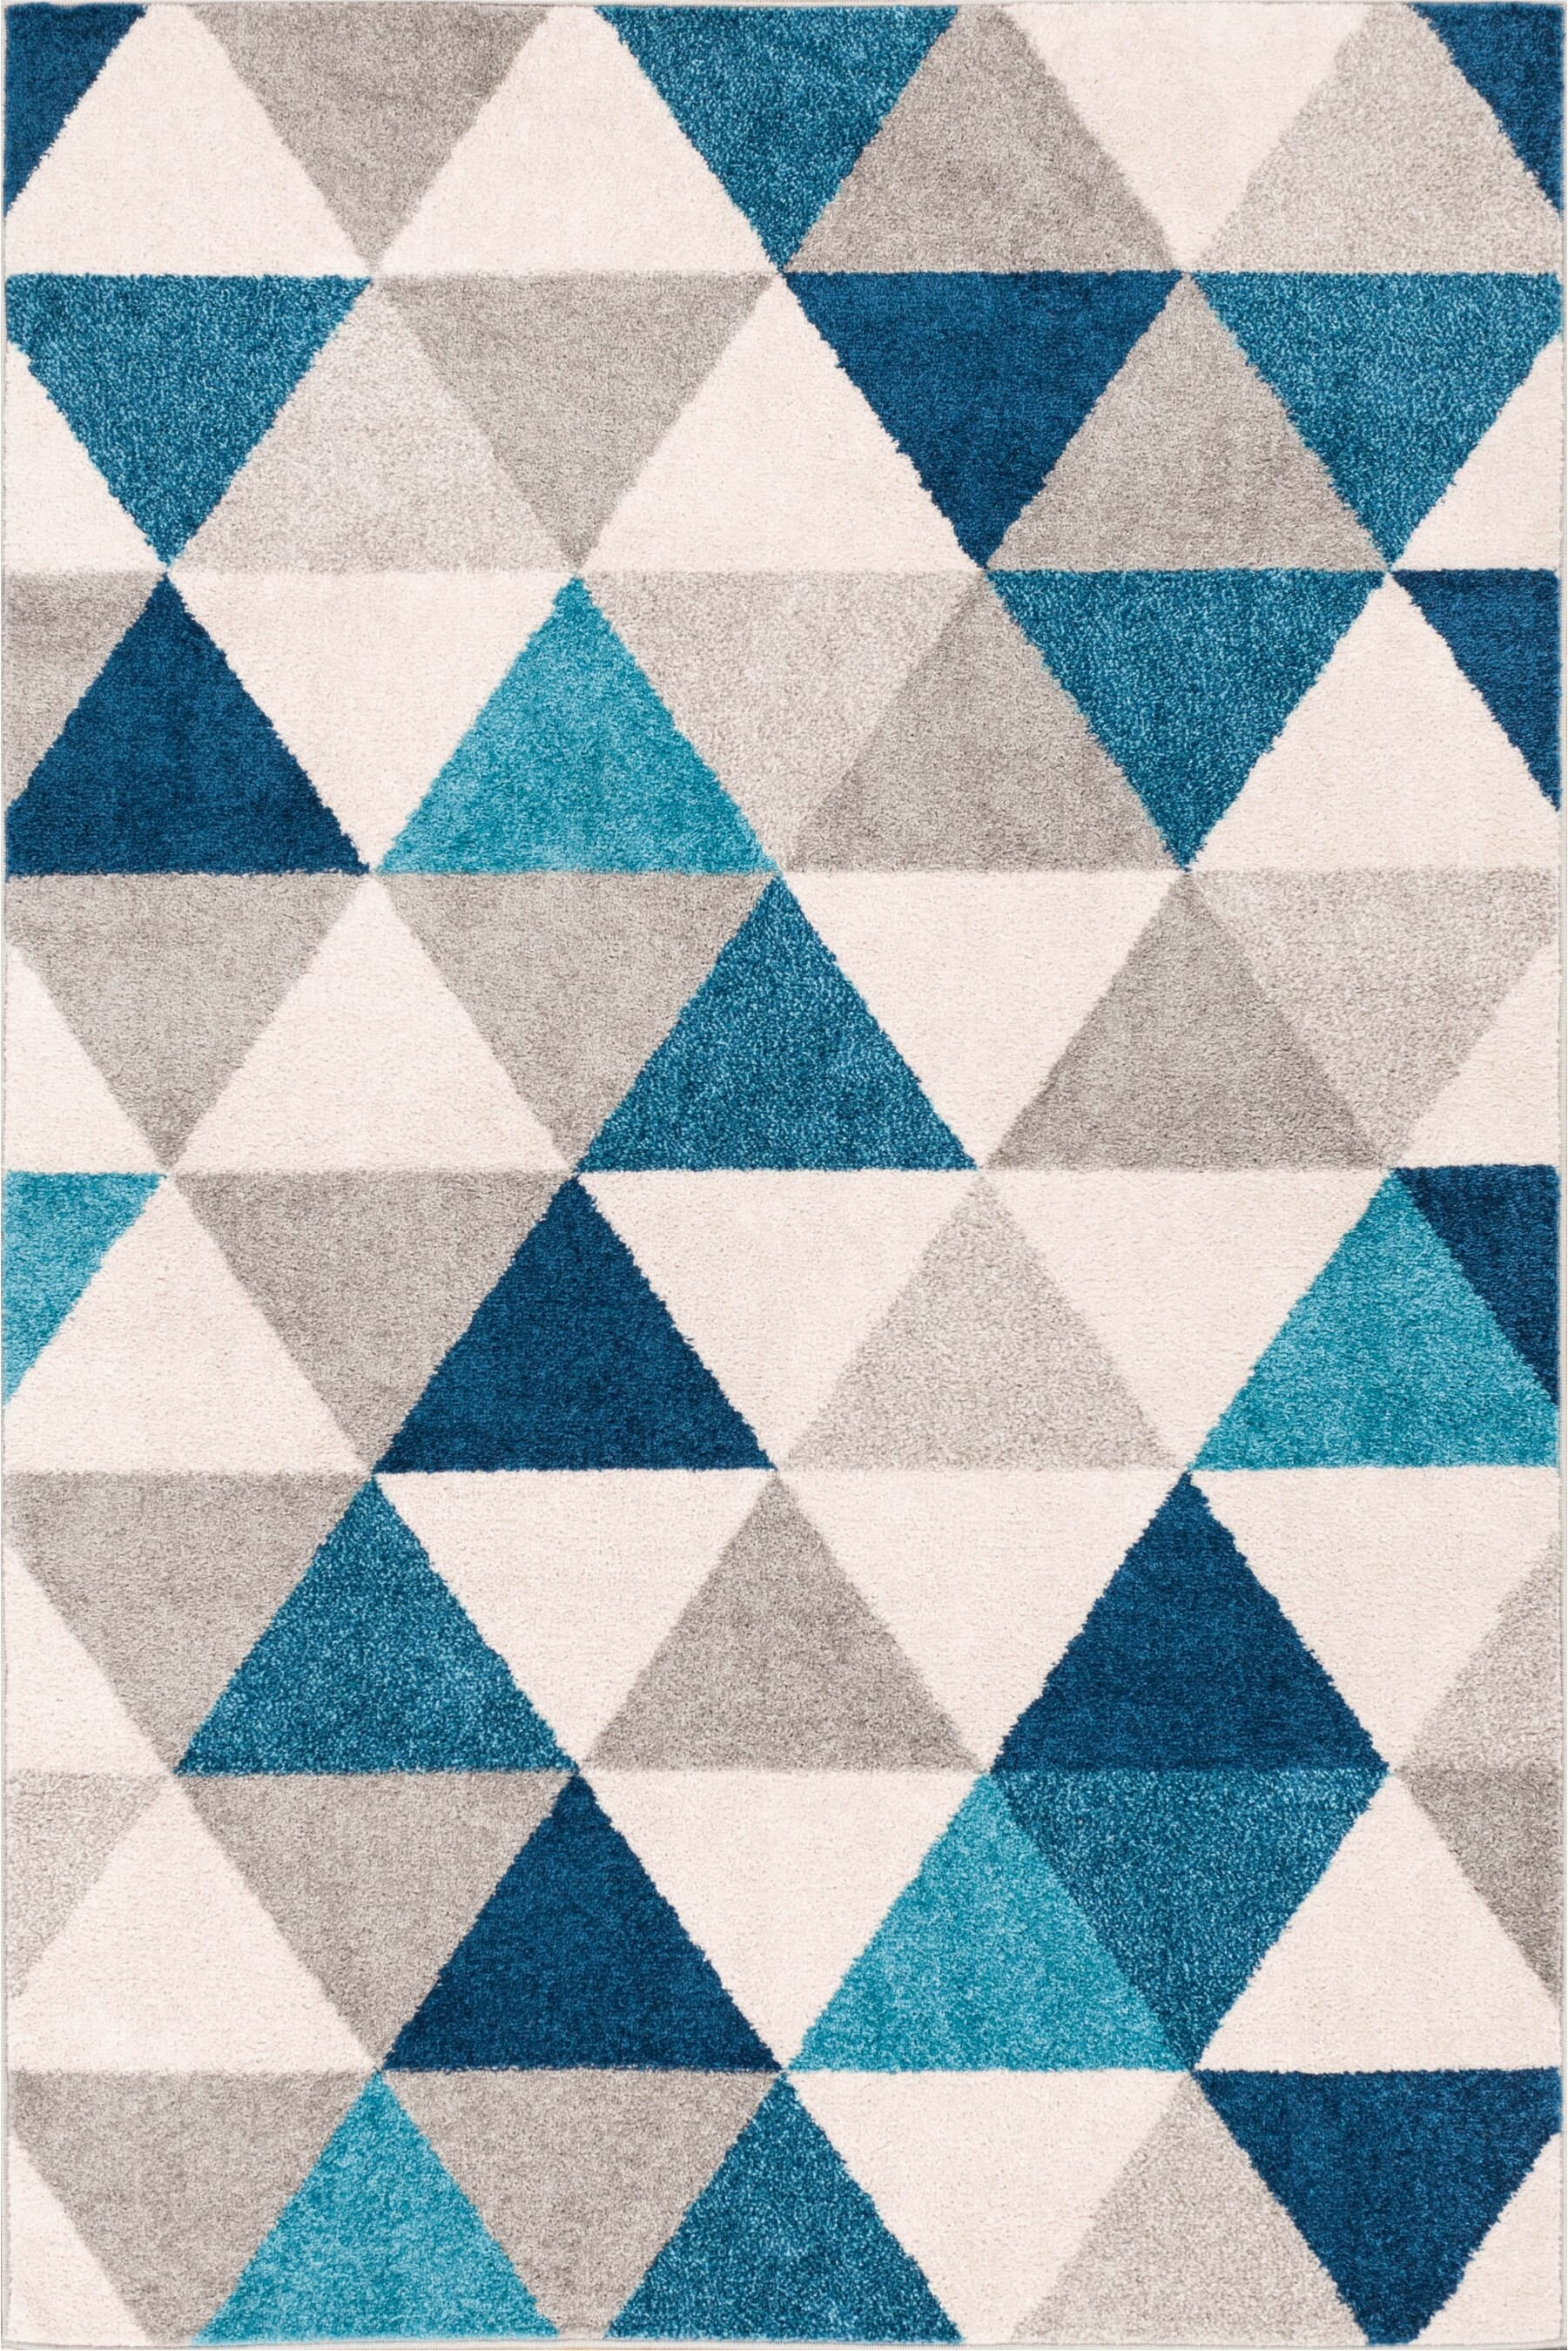 shipping product overstock modern home garden today rug design free floral blue area x